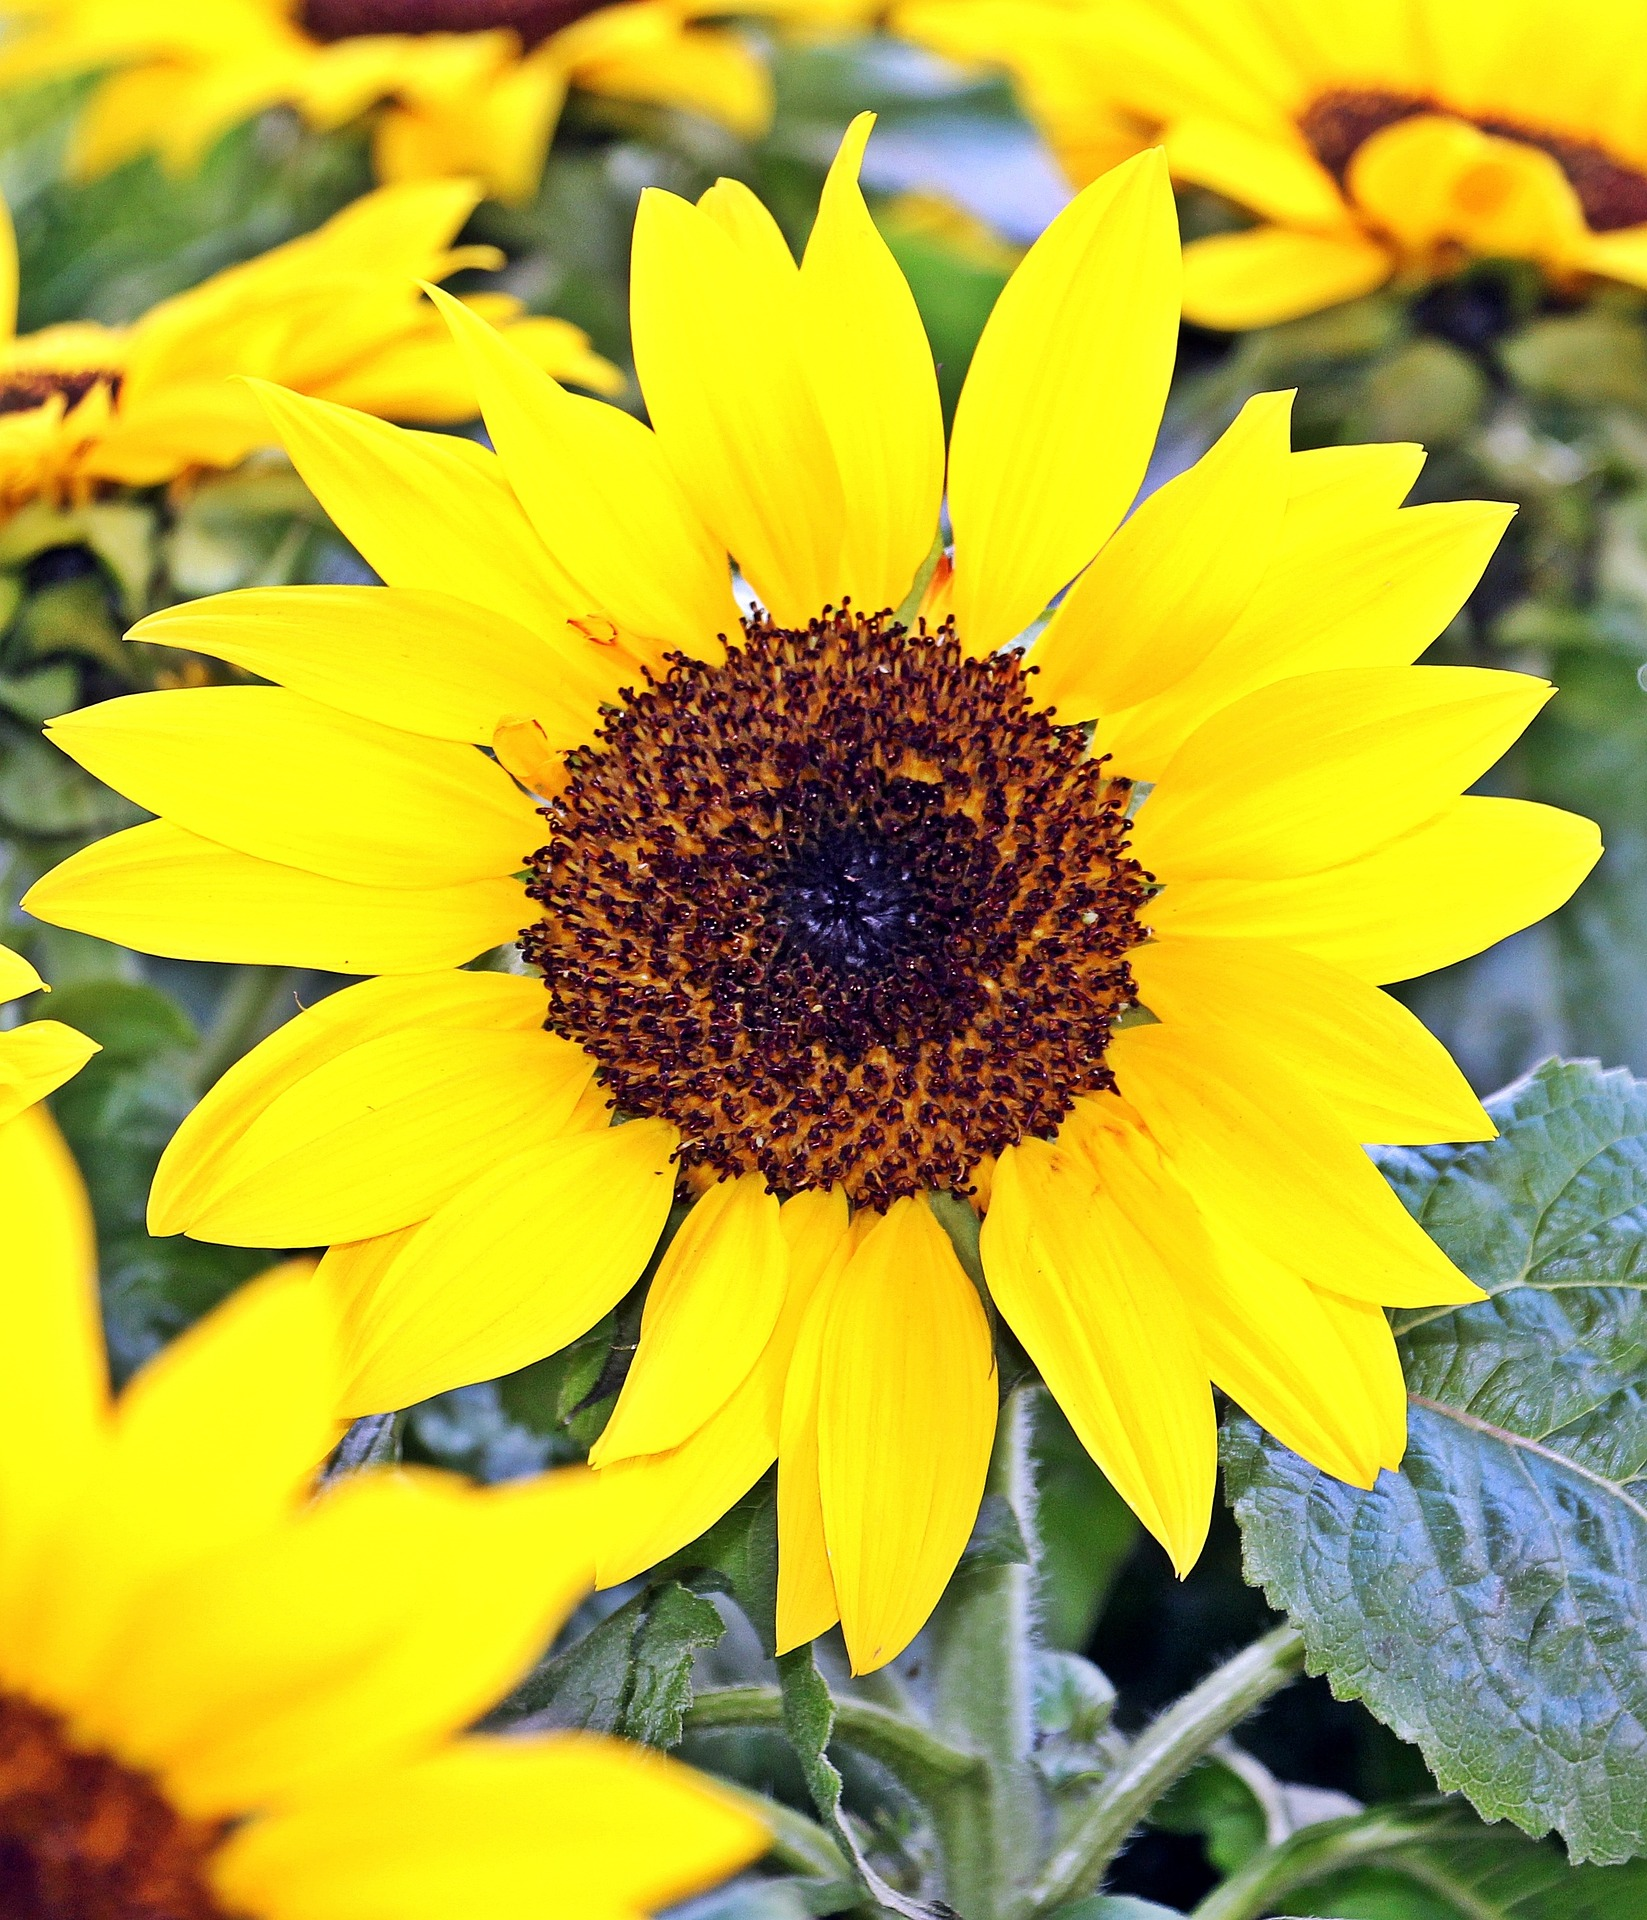 Sunflower Field, Seed, Nature, Sun, Macro, HQ Photo